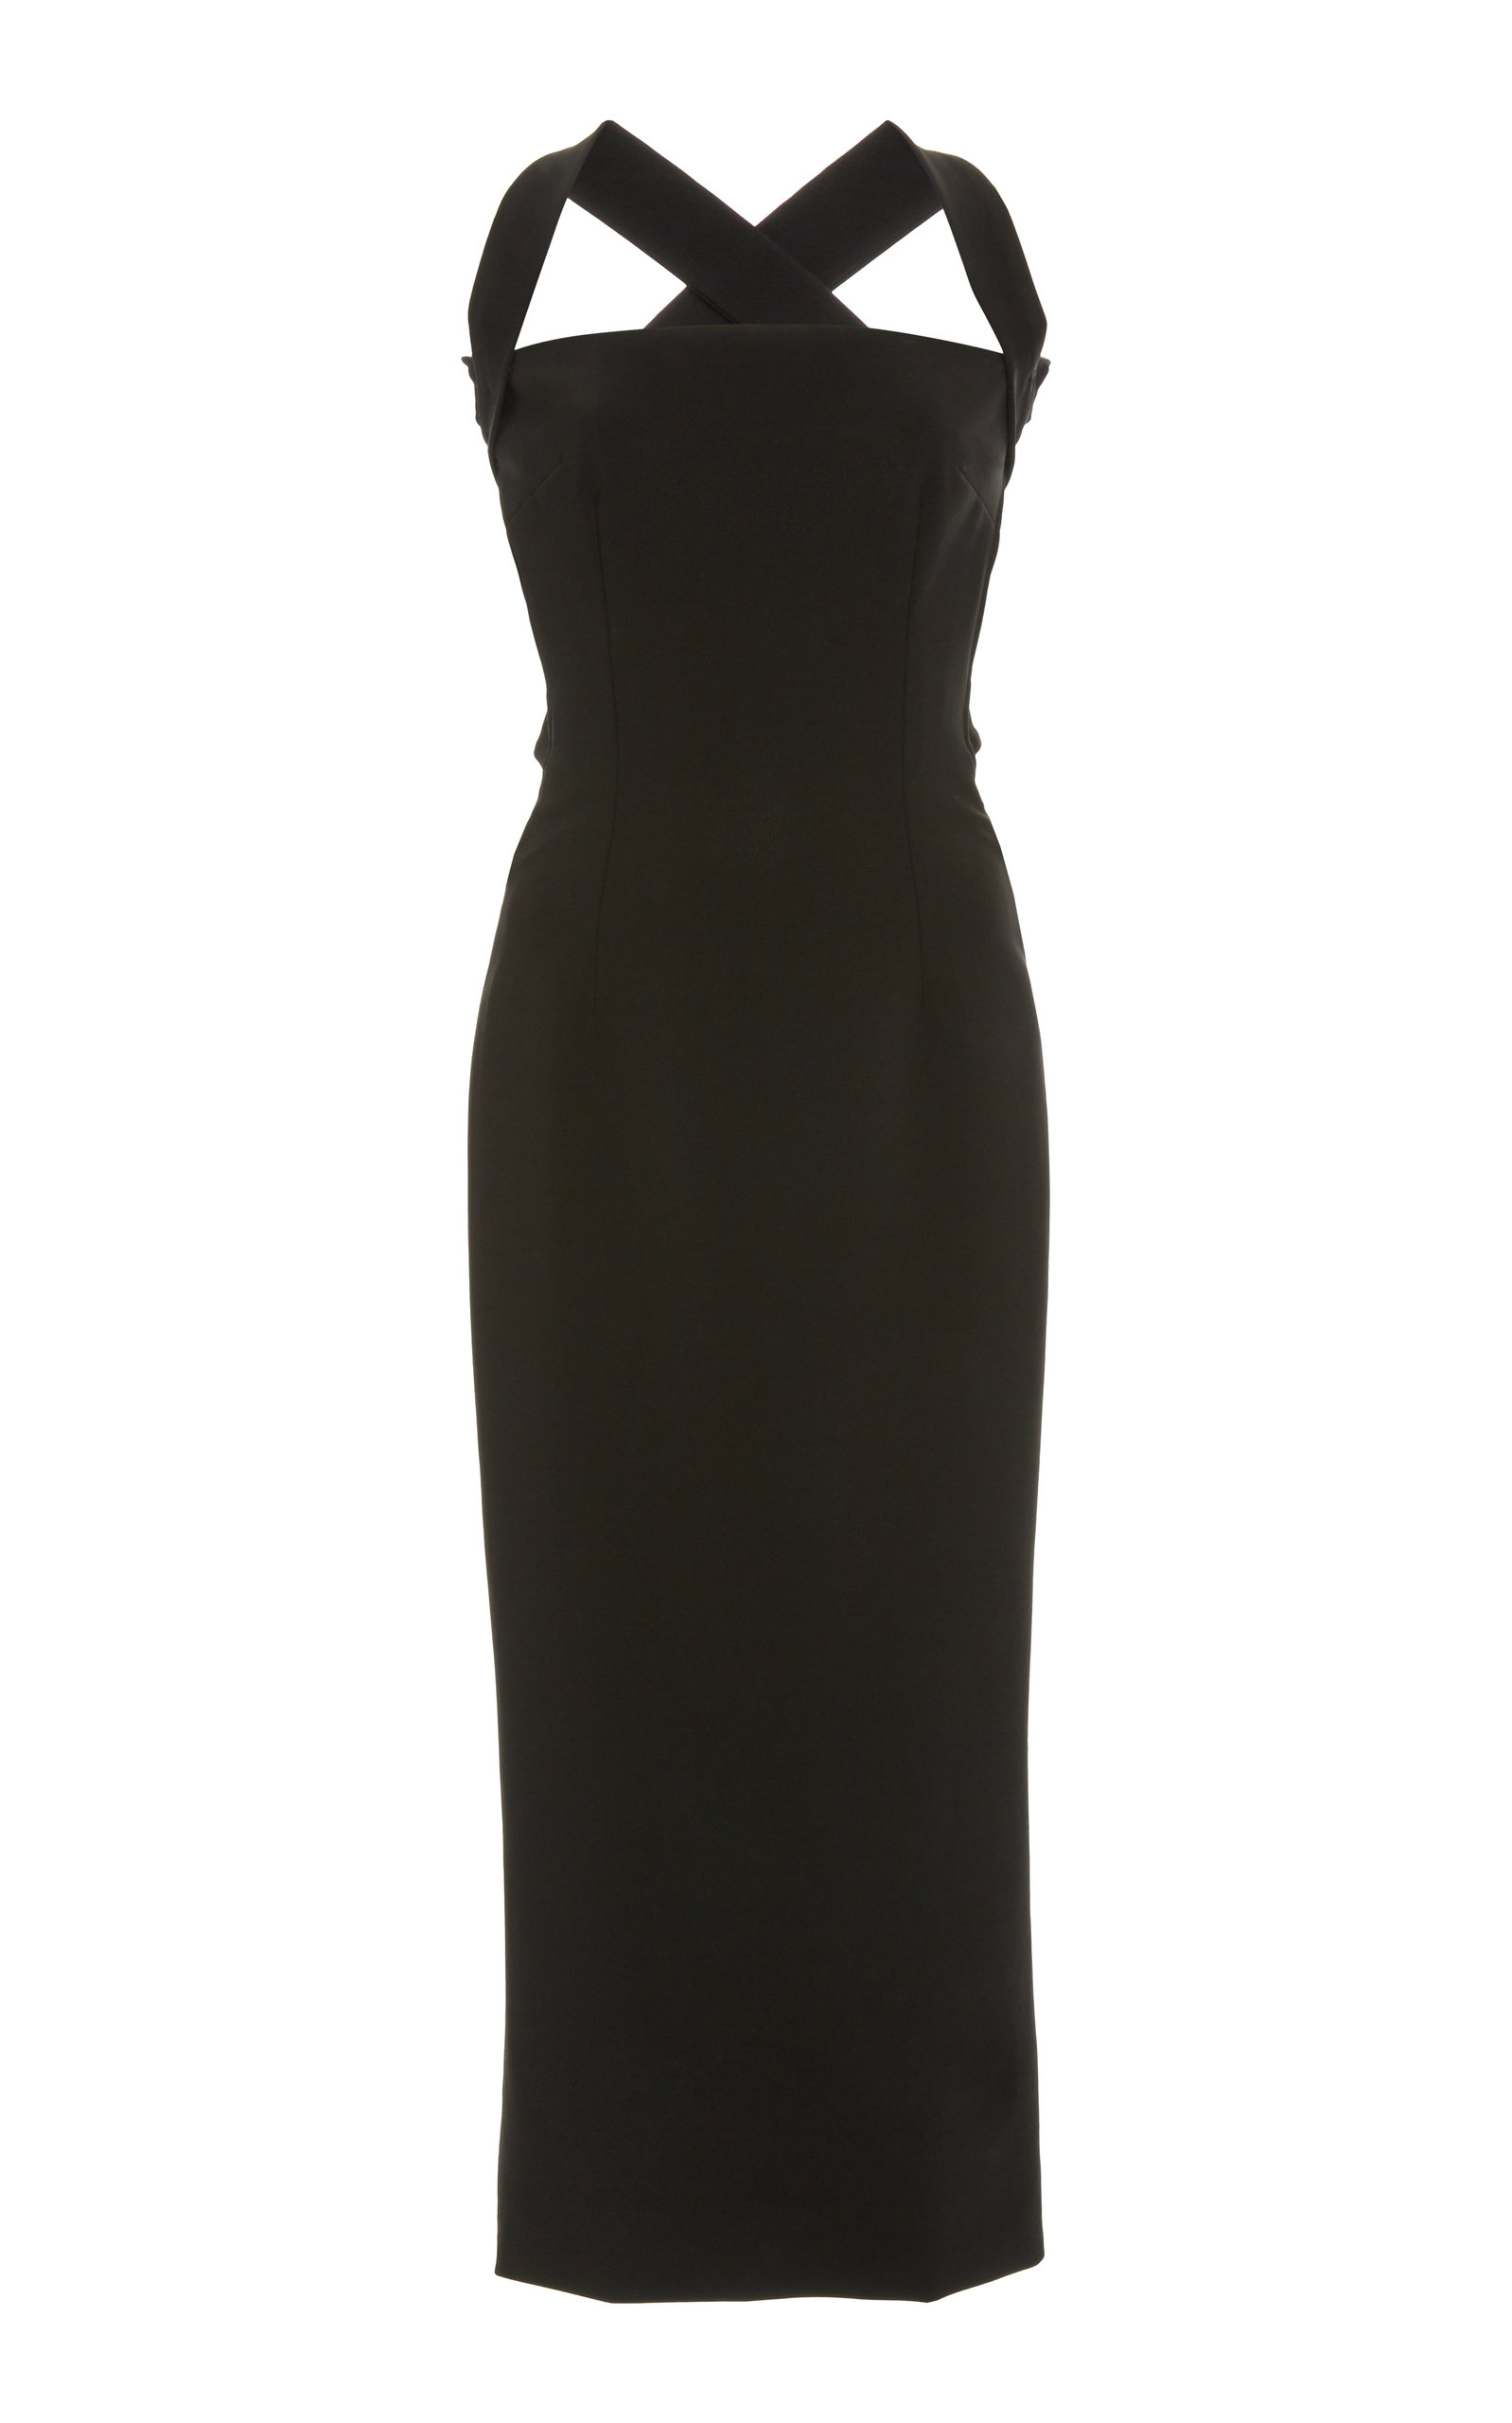 Buy Dolce & Gabbana Tie-Detailed Stretch-Jersey Midi Dress online, shop Dolce & Gabbana at the best price